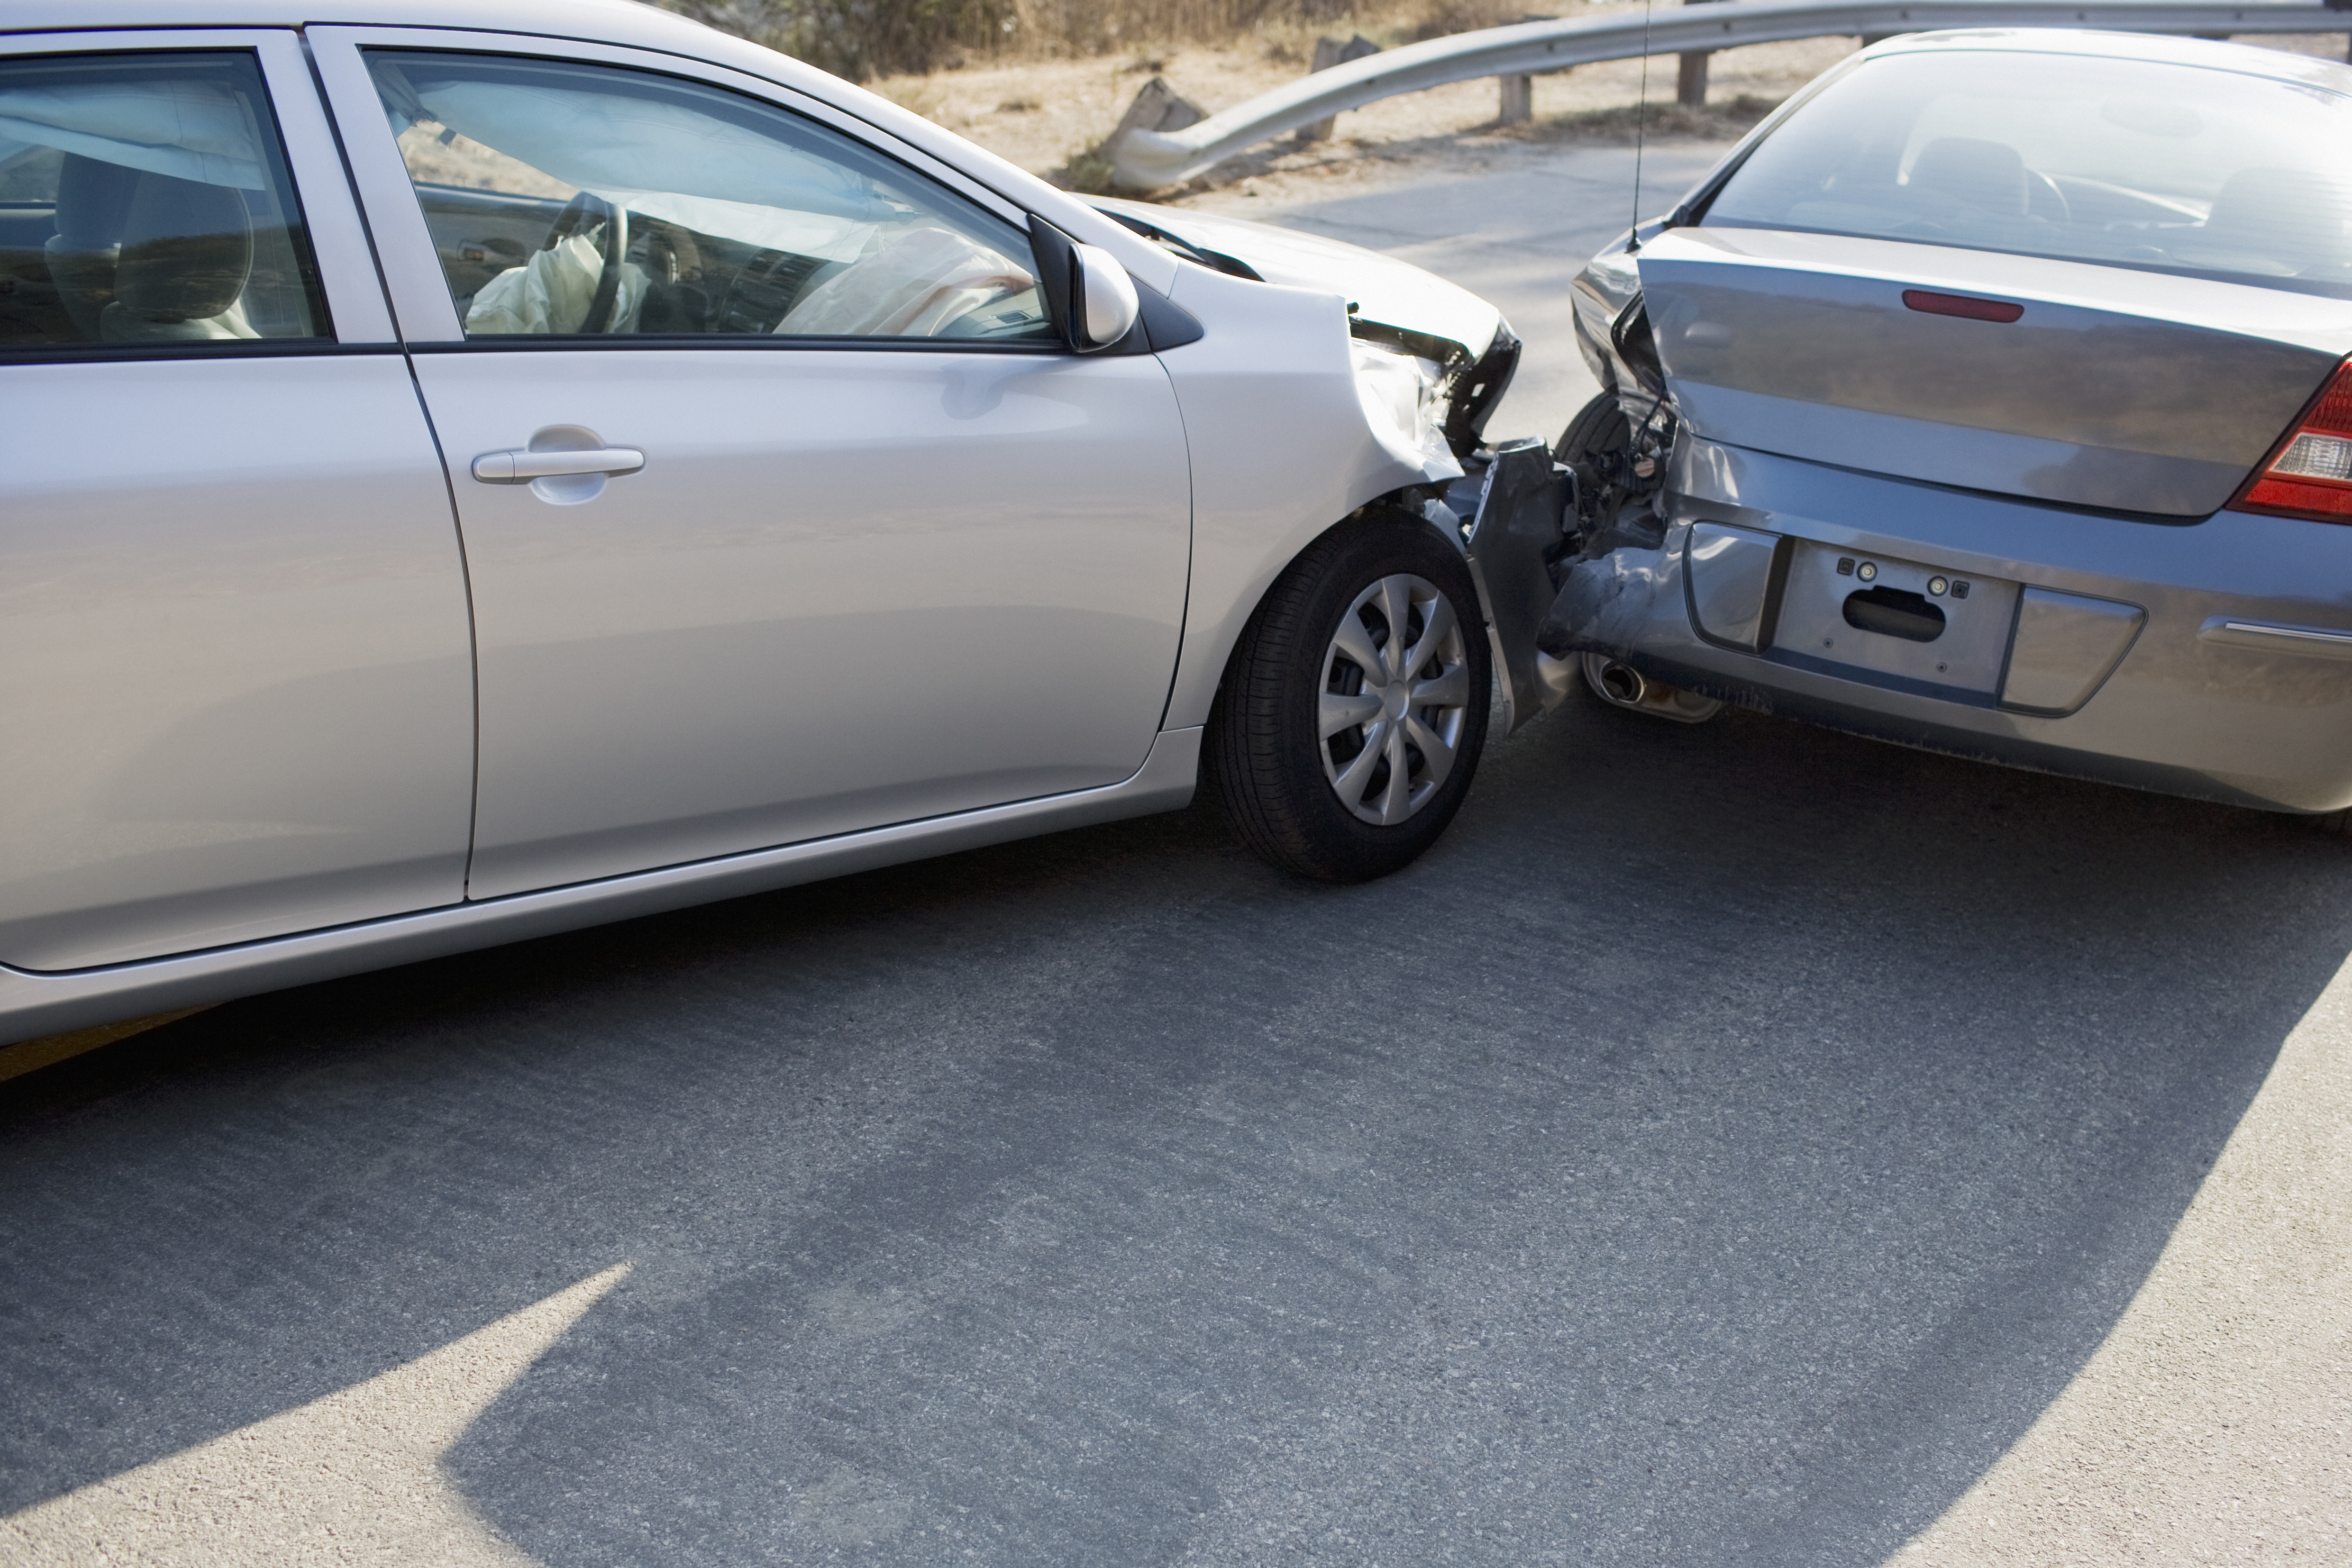 Two cars in collision on a roadway. (Getty Images)